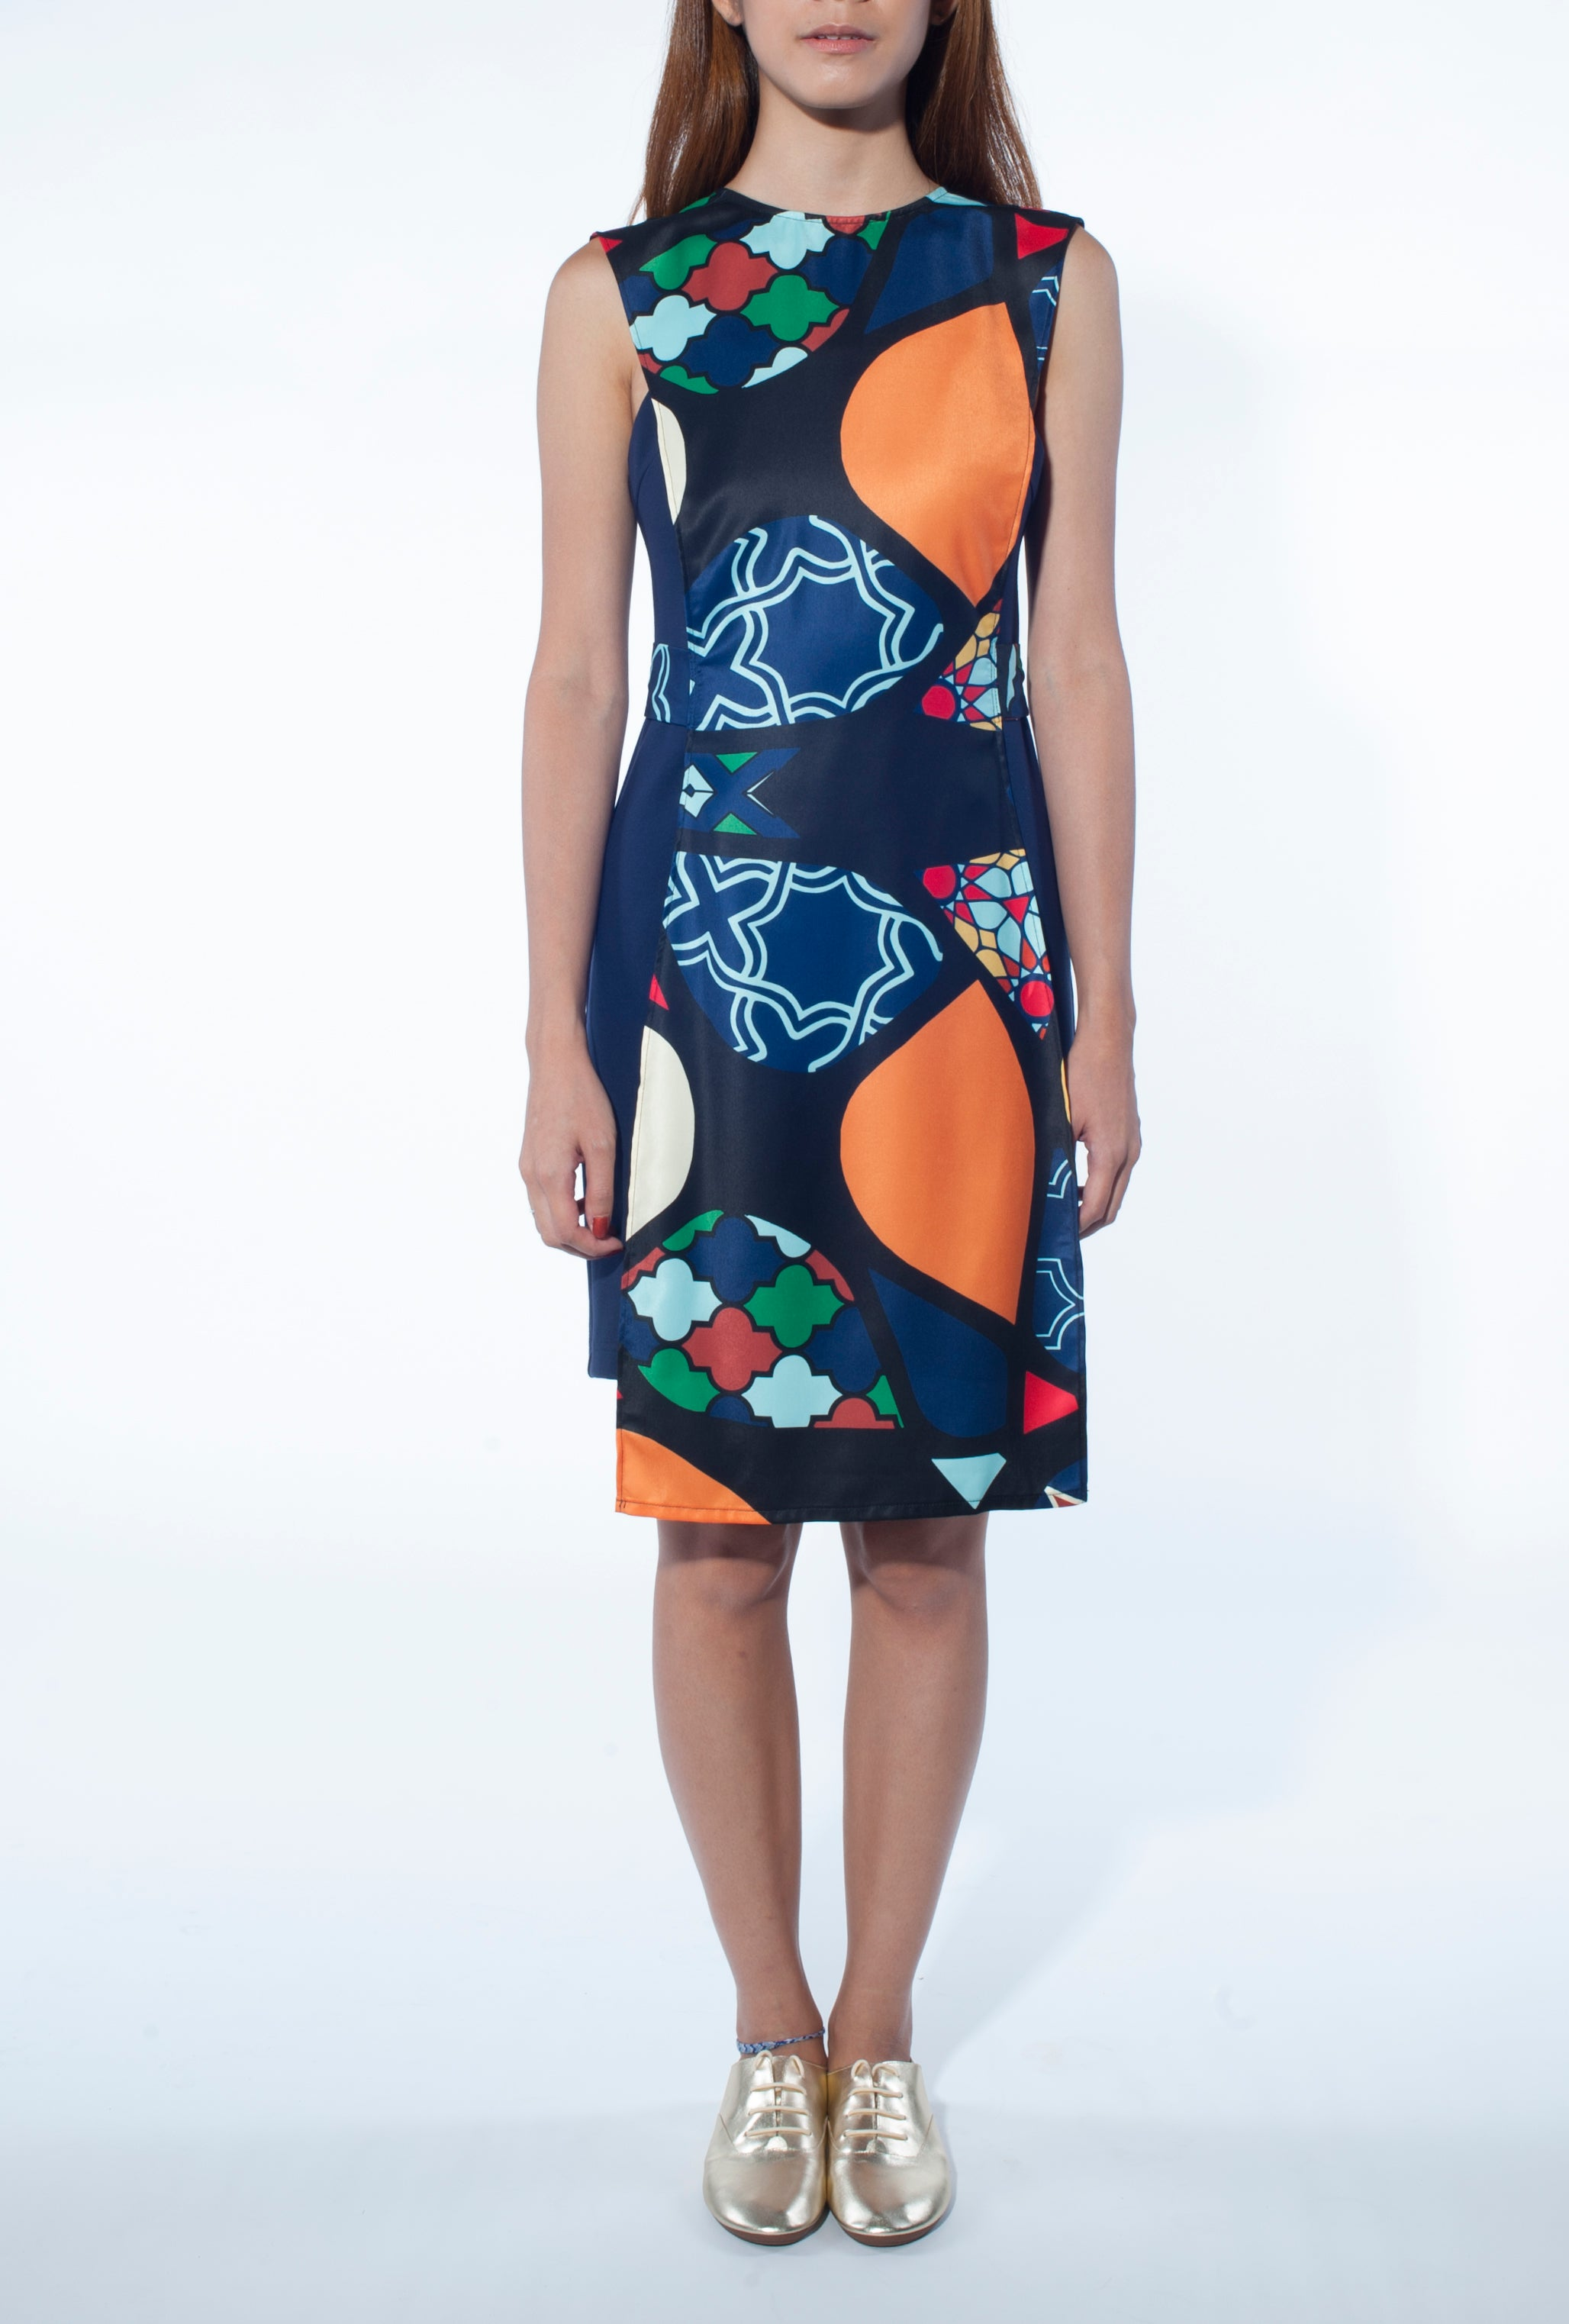 Apron Overlay Dress (Mosaic Print)